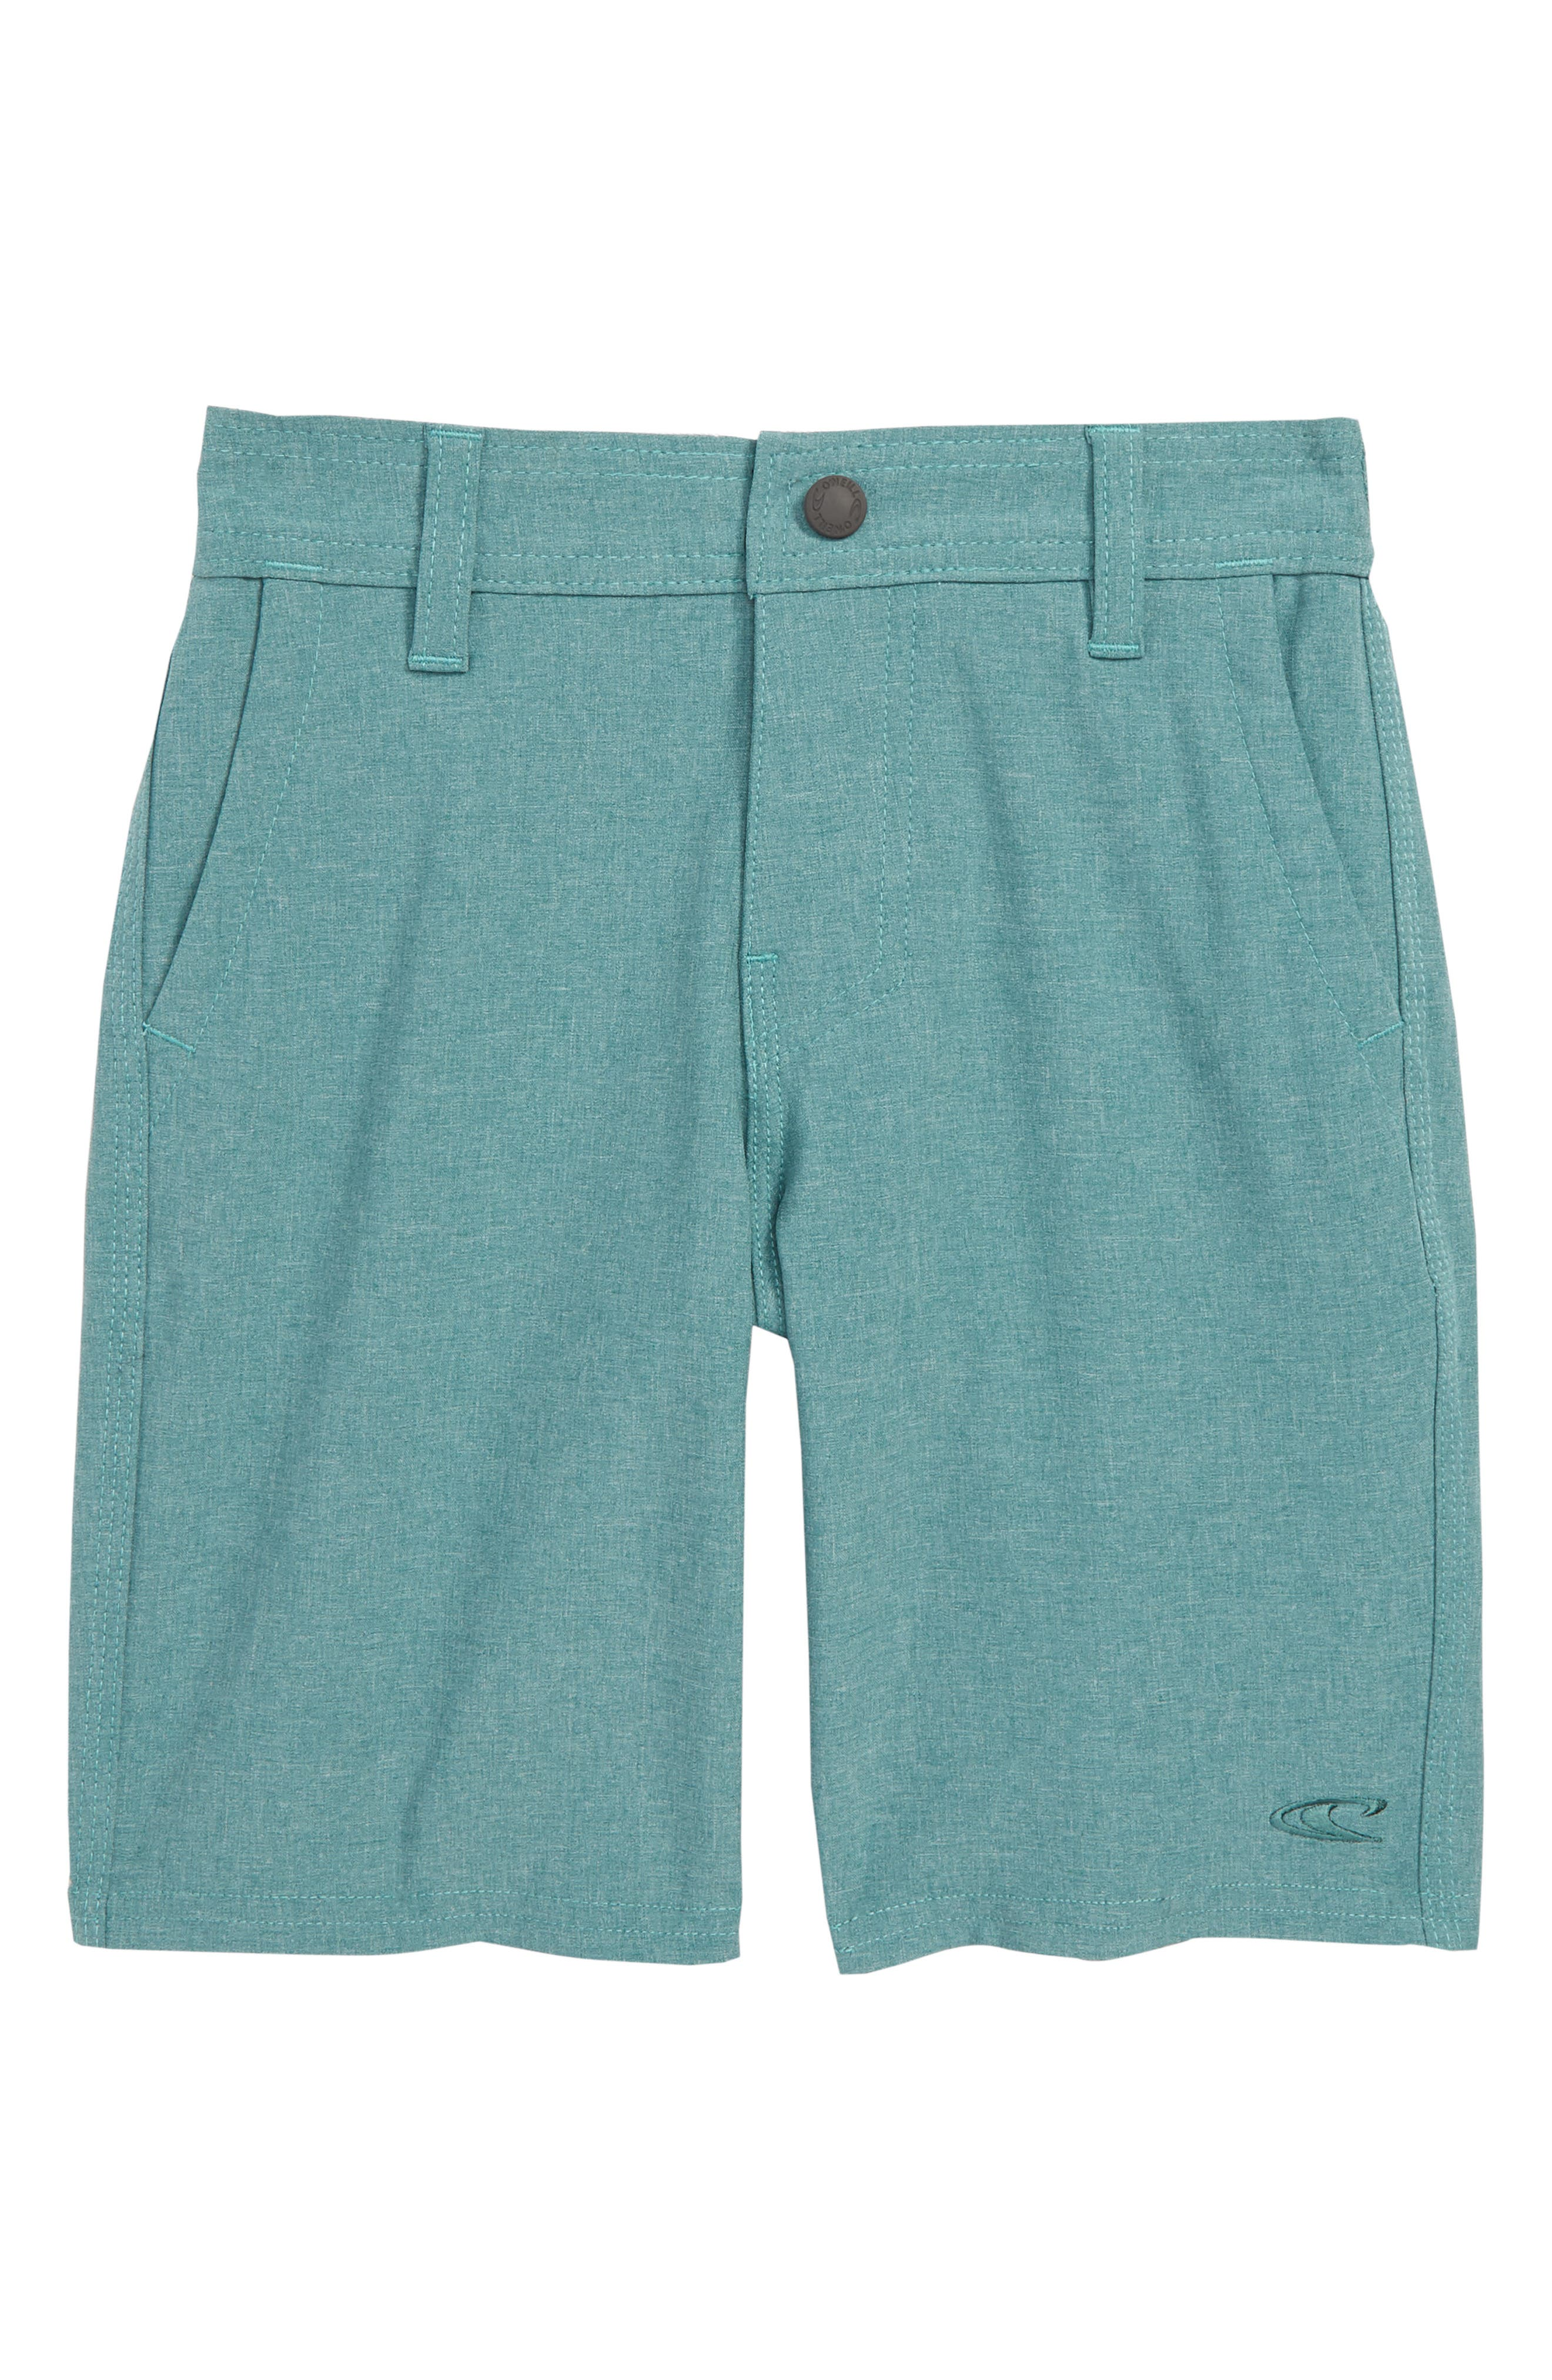 Loaded Heather Hybrid Board Shorts,                         Main,                         color, PINE